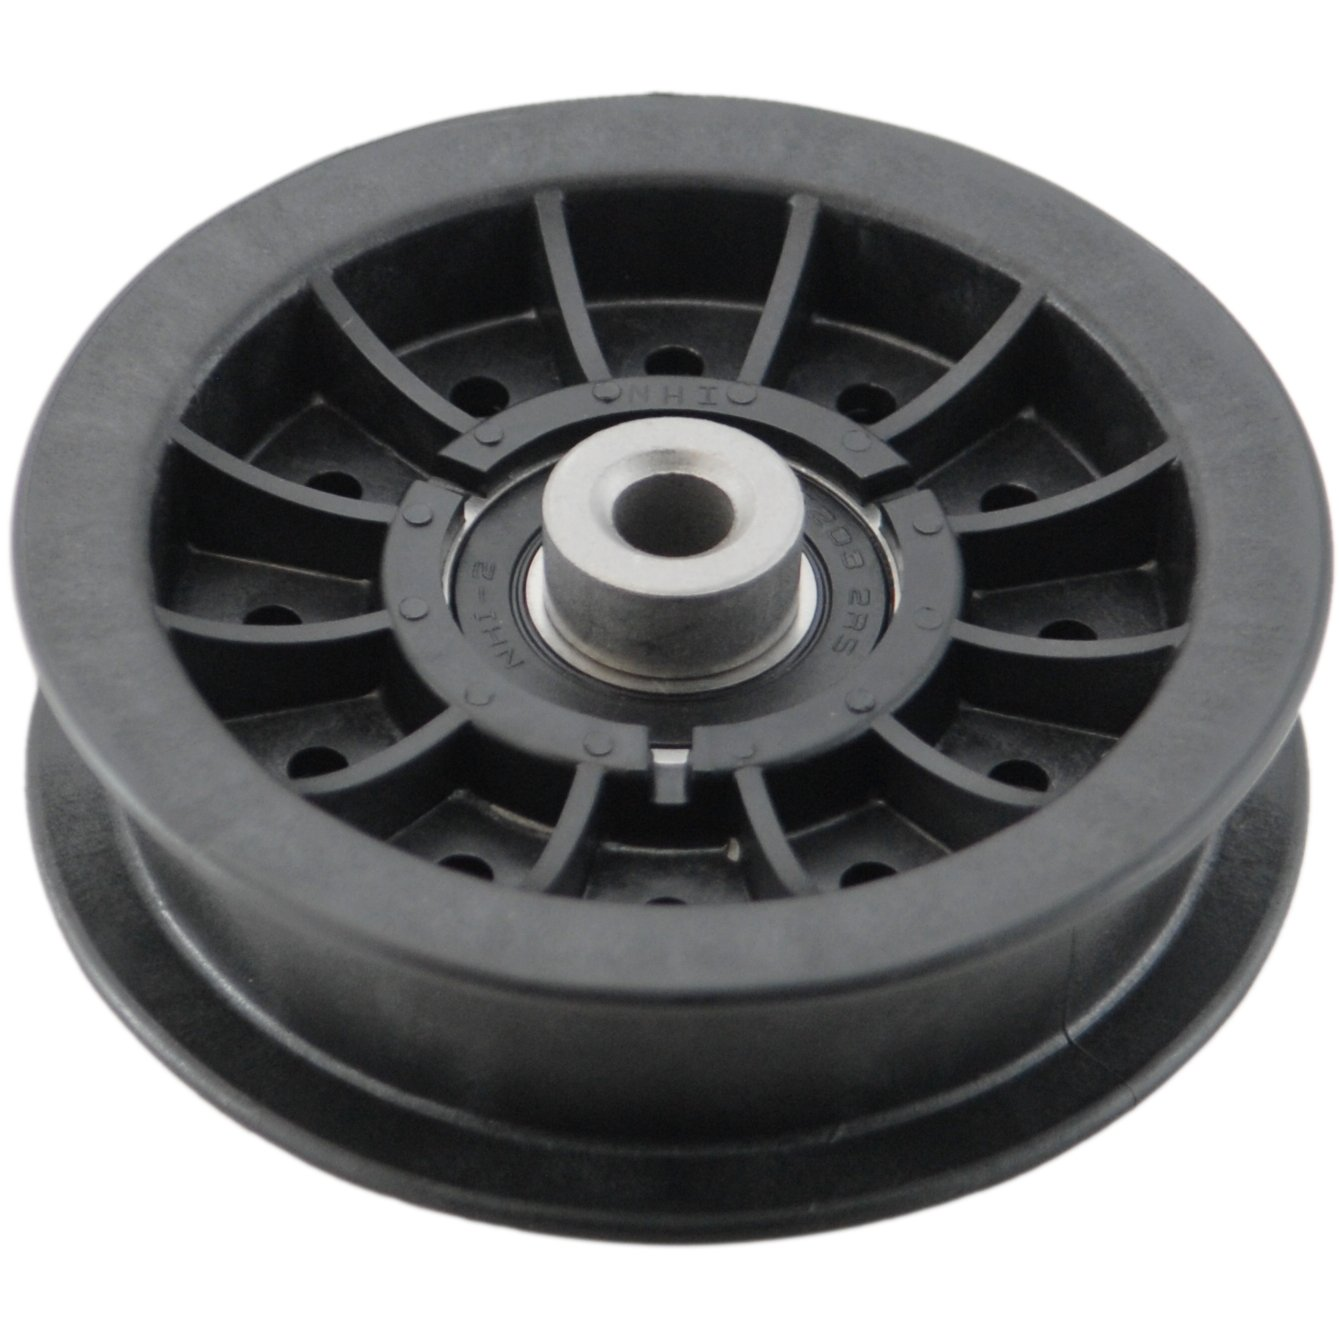 Rotary 8602 Idler Pulley by Rotary